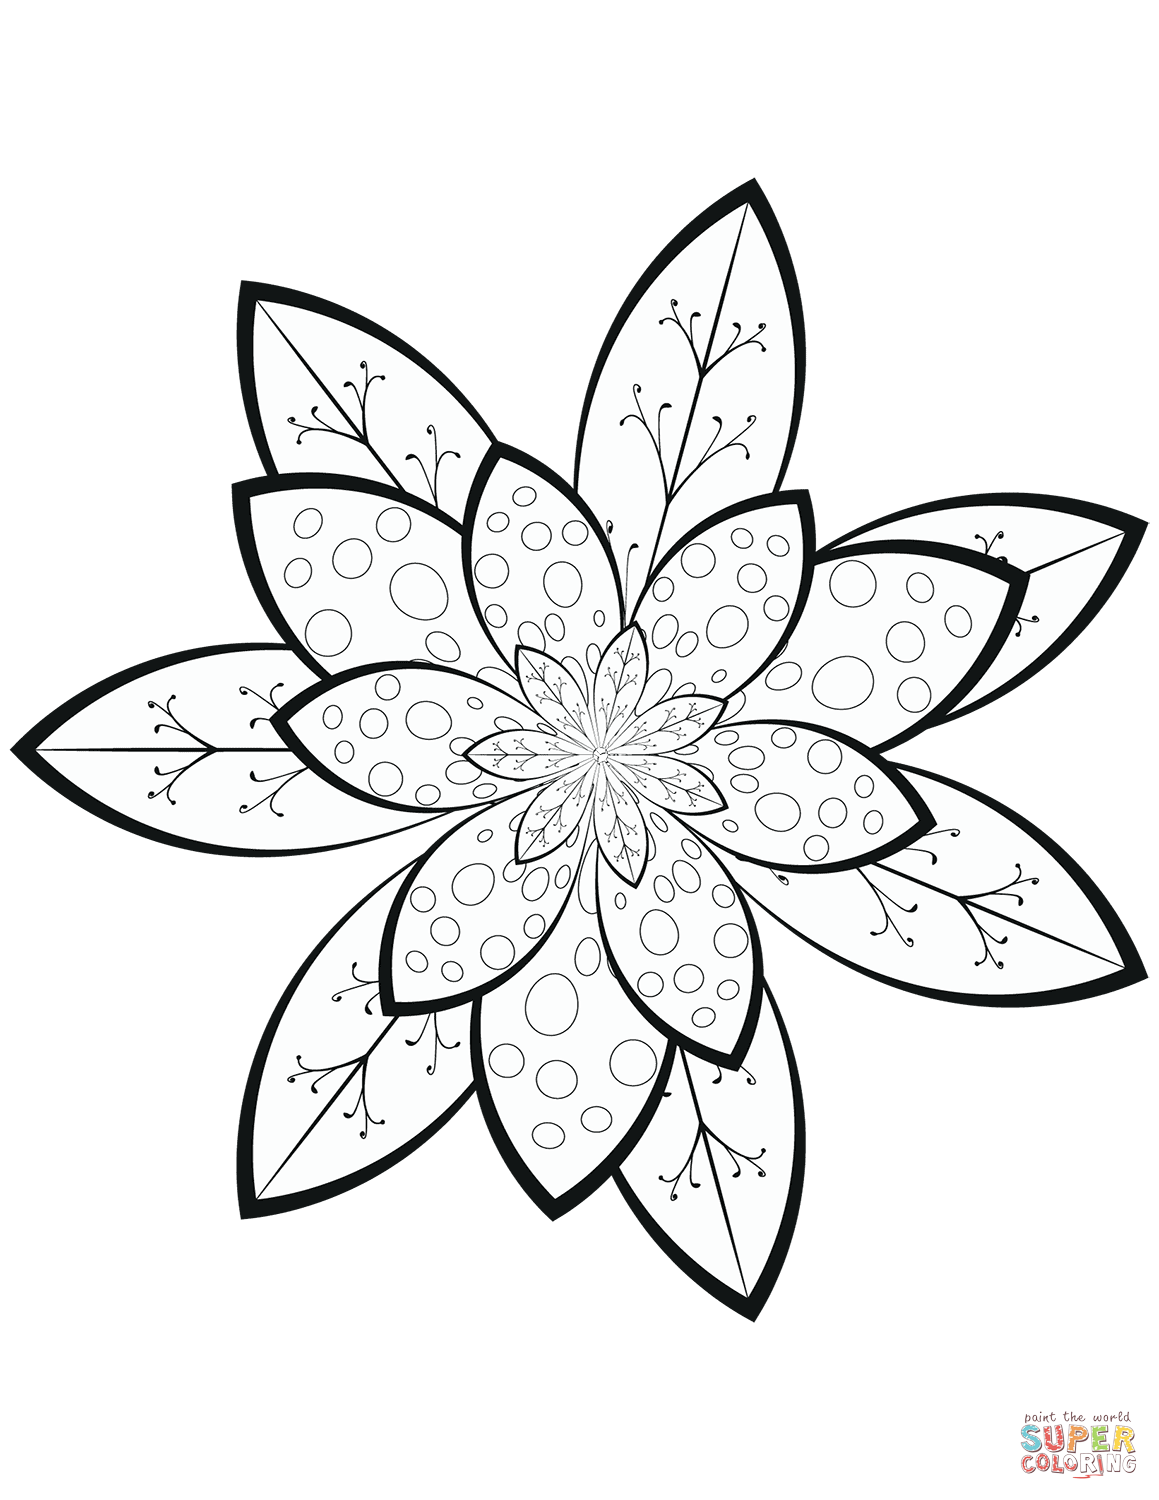 flower pattern to color get this flower pattern coloring pages to print for adults flower to pattern color